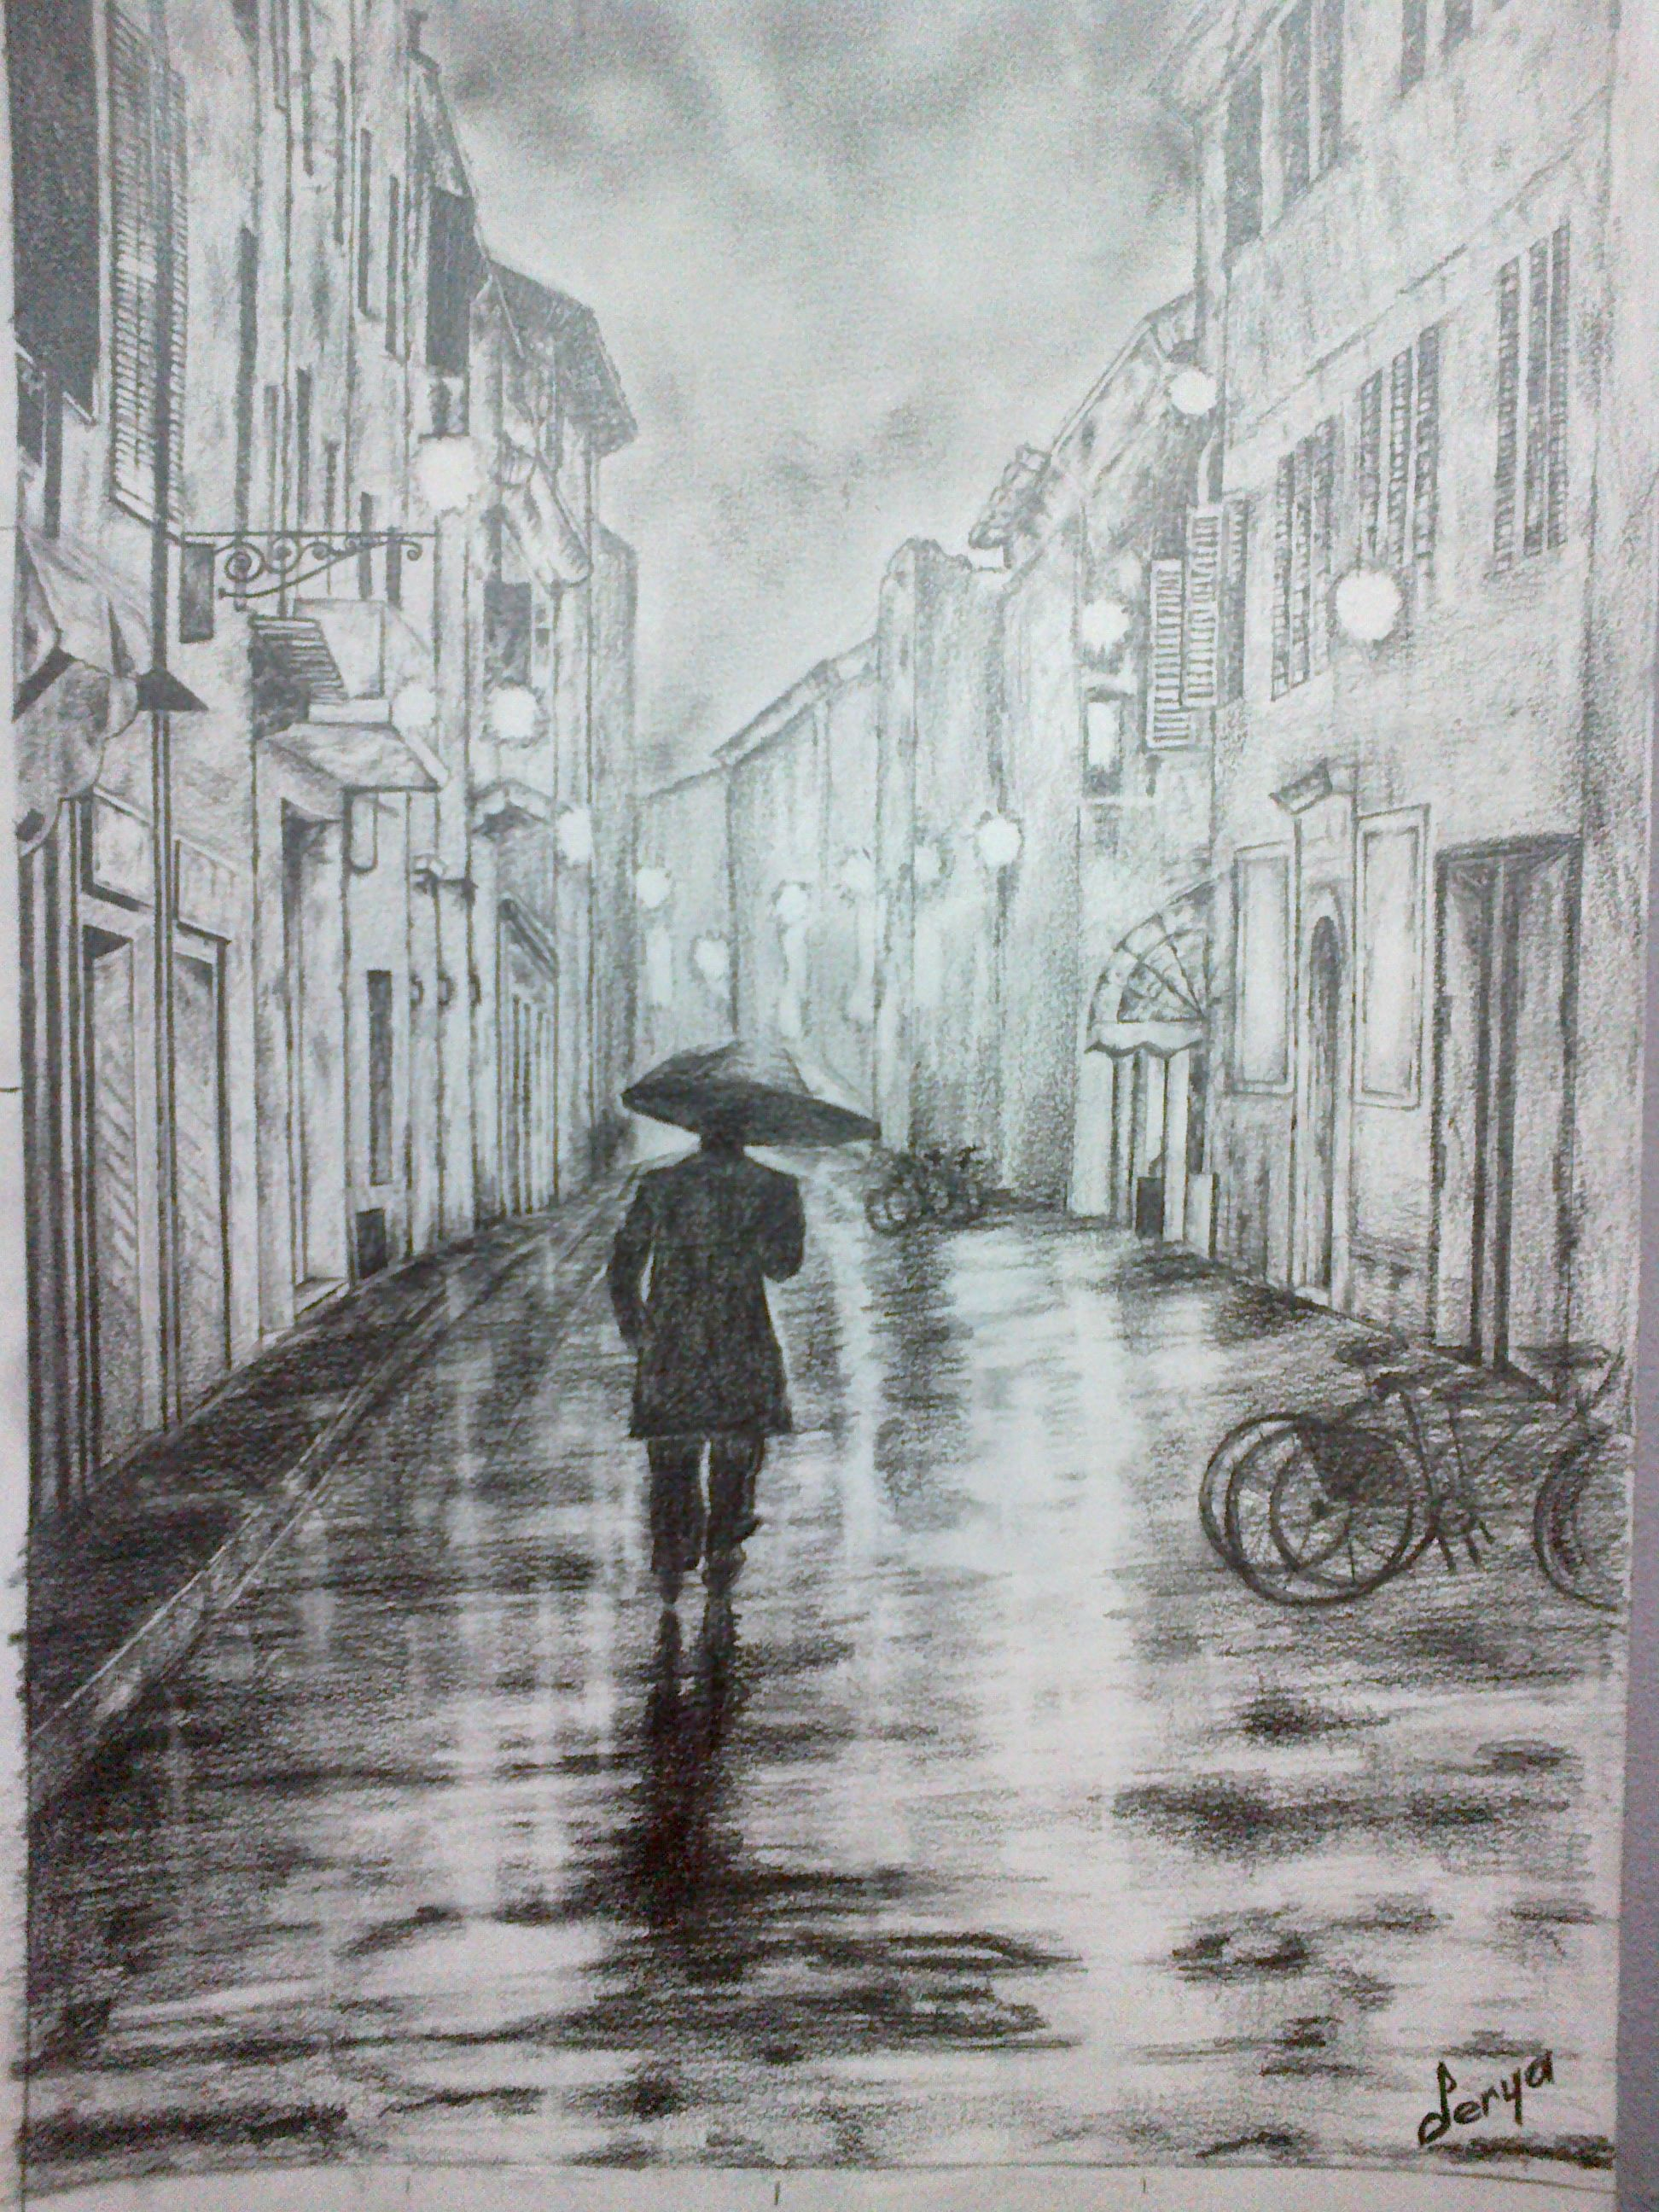 Rainy day street charcoal drawing